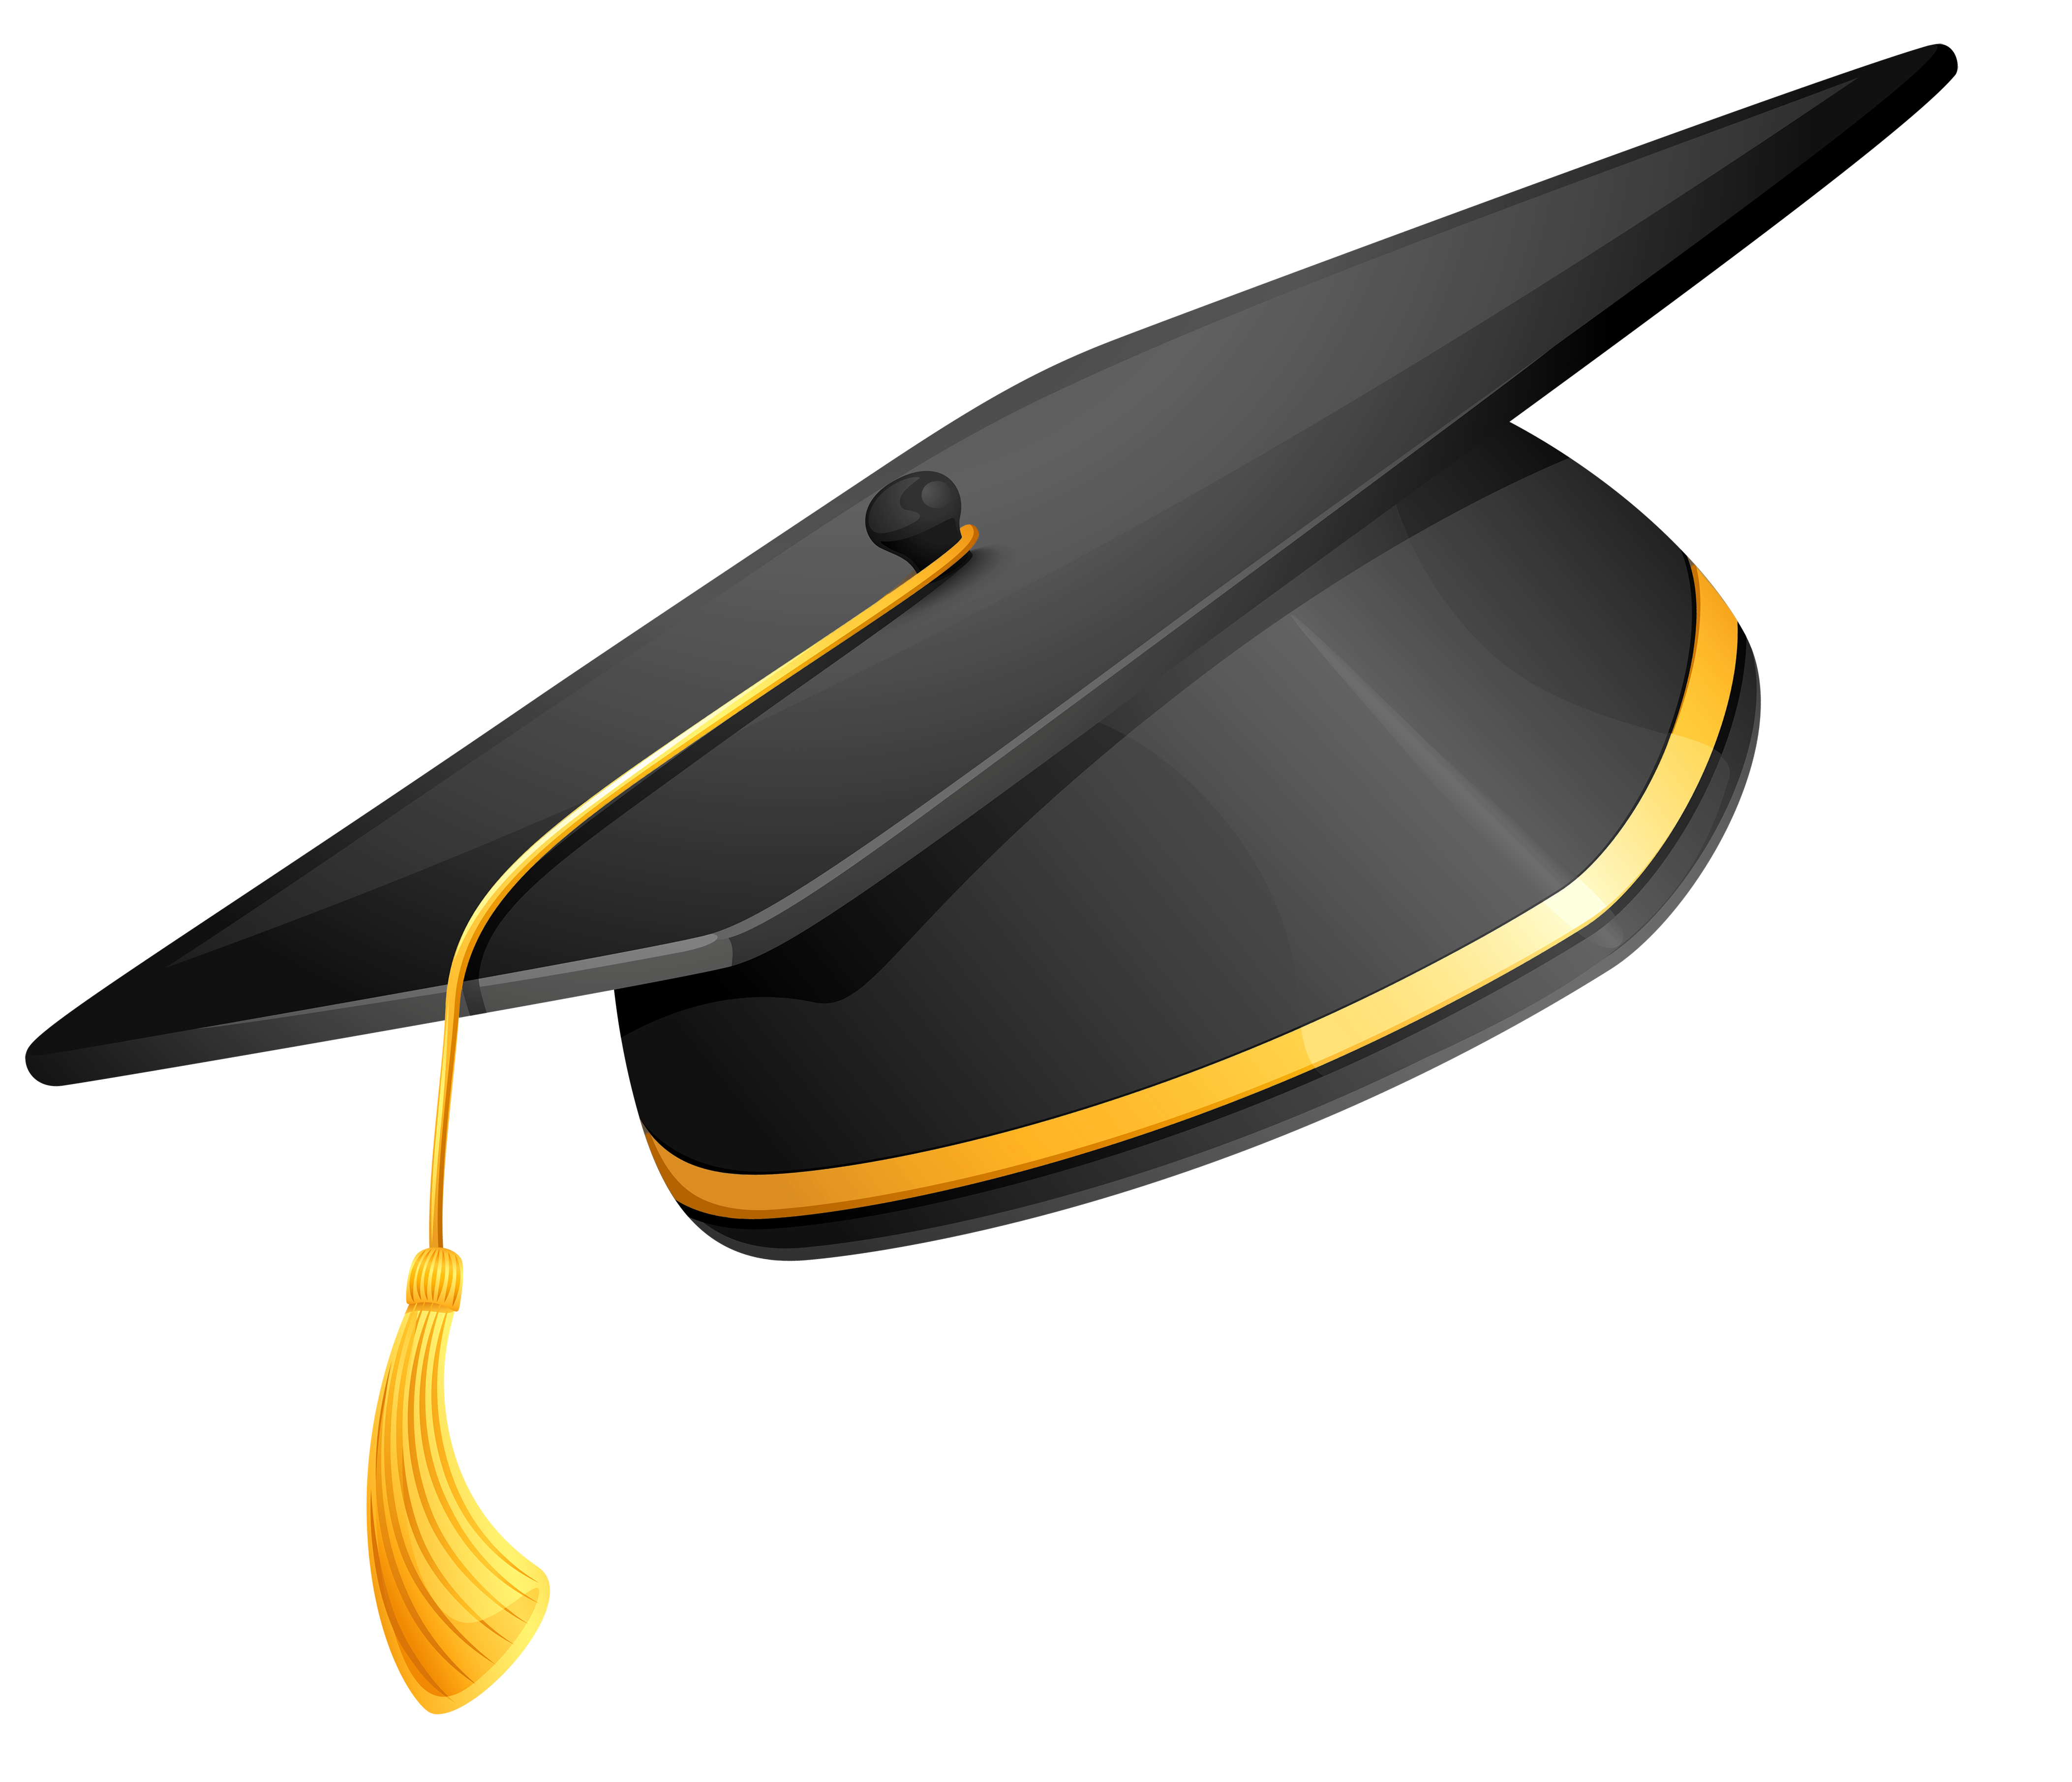 Cap clipart school. Graduation png picture gallery